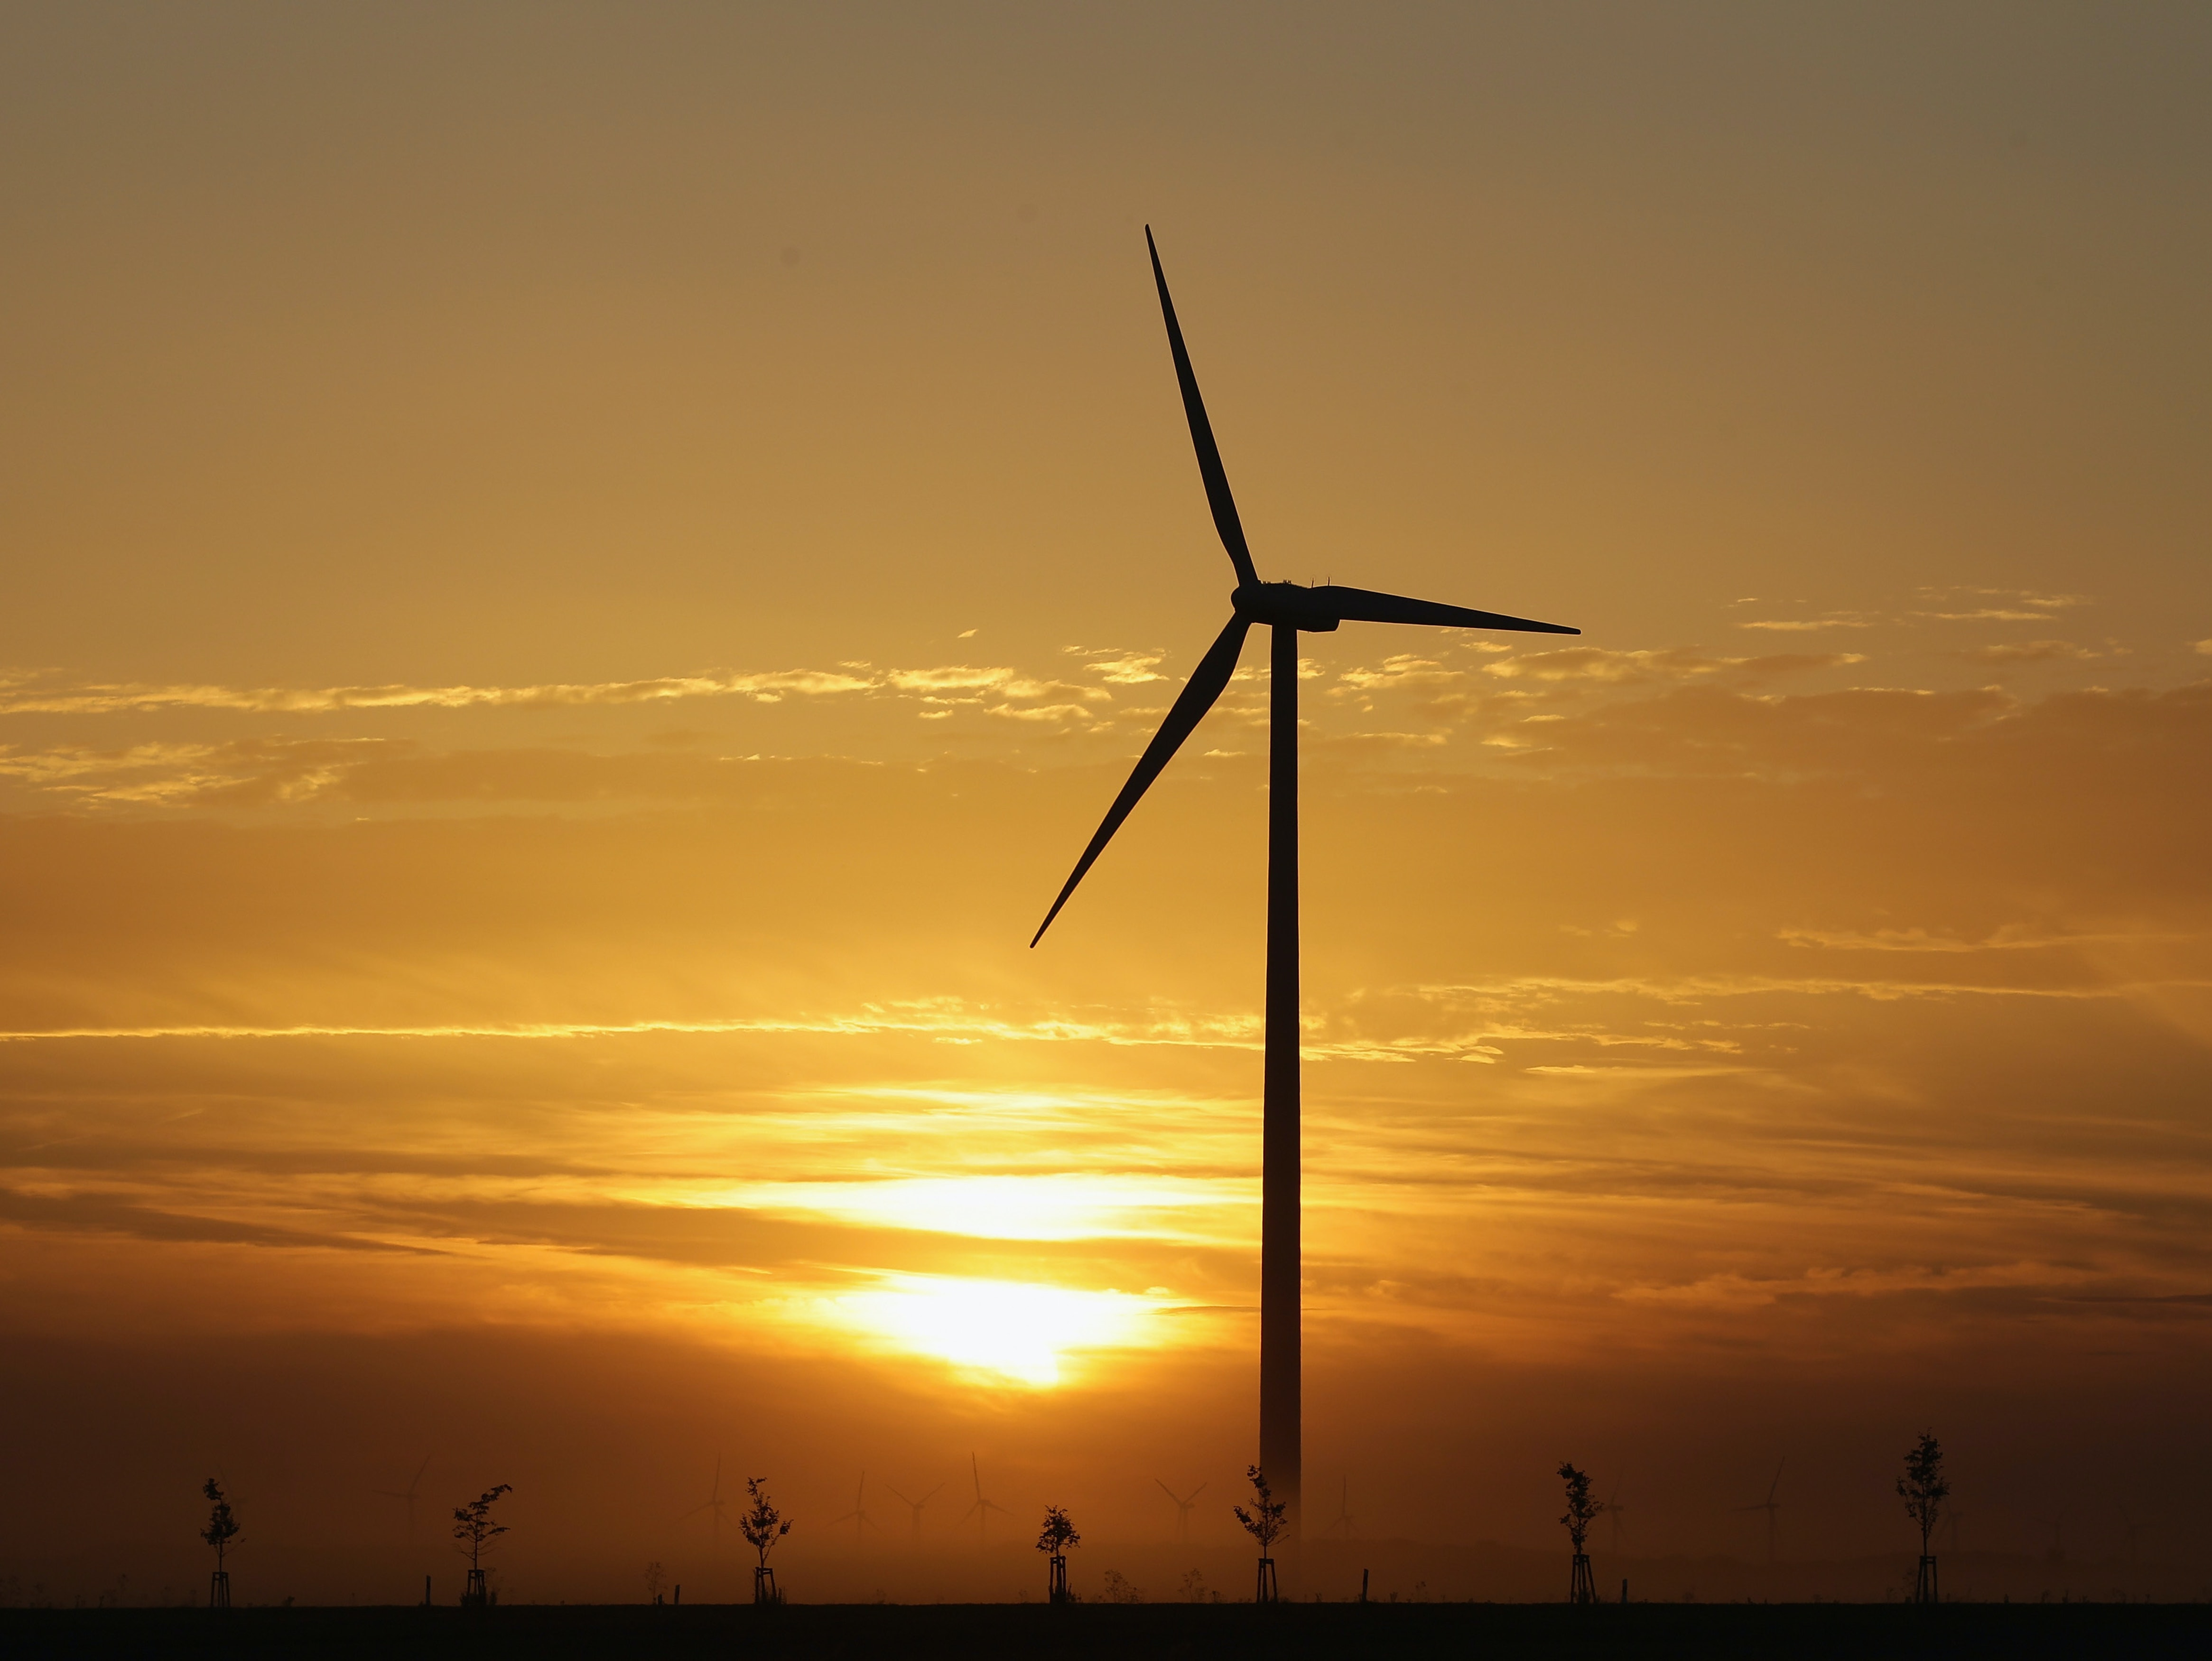 A wind turbine at sunset is pictured on August 20, 2010 in Roedgen near Bitterfeld, Germany. Germany is investing heavily in renewable energy production, including wind power and solar, and is seeking to produce 30% of its electricity nationwide with renewables by 2020.